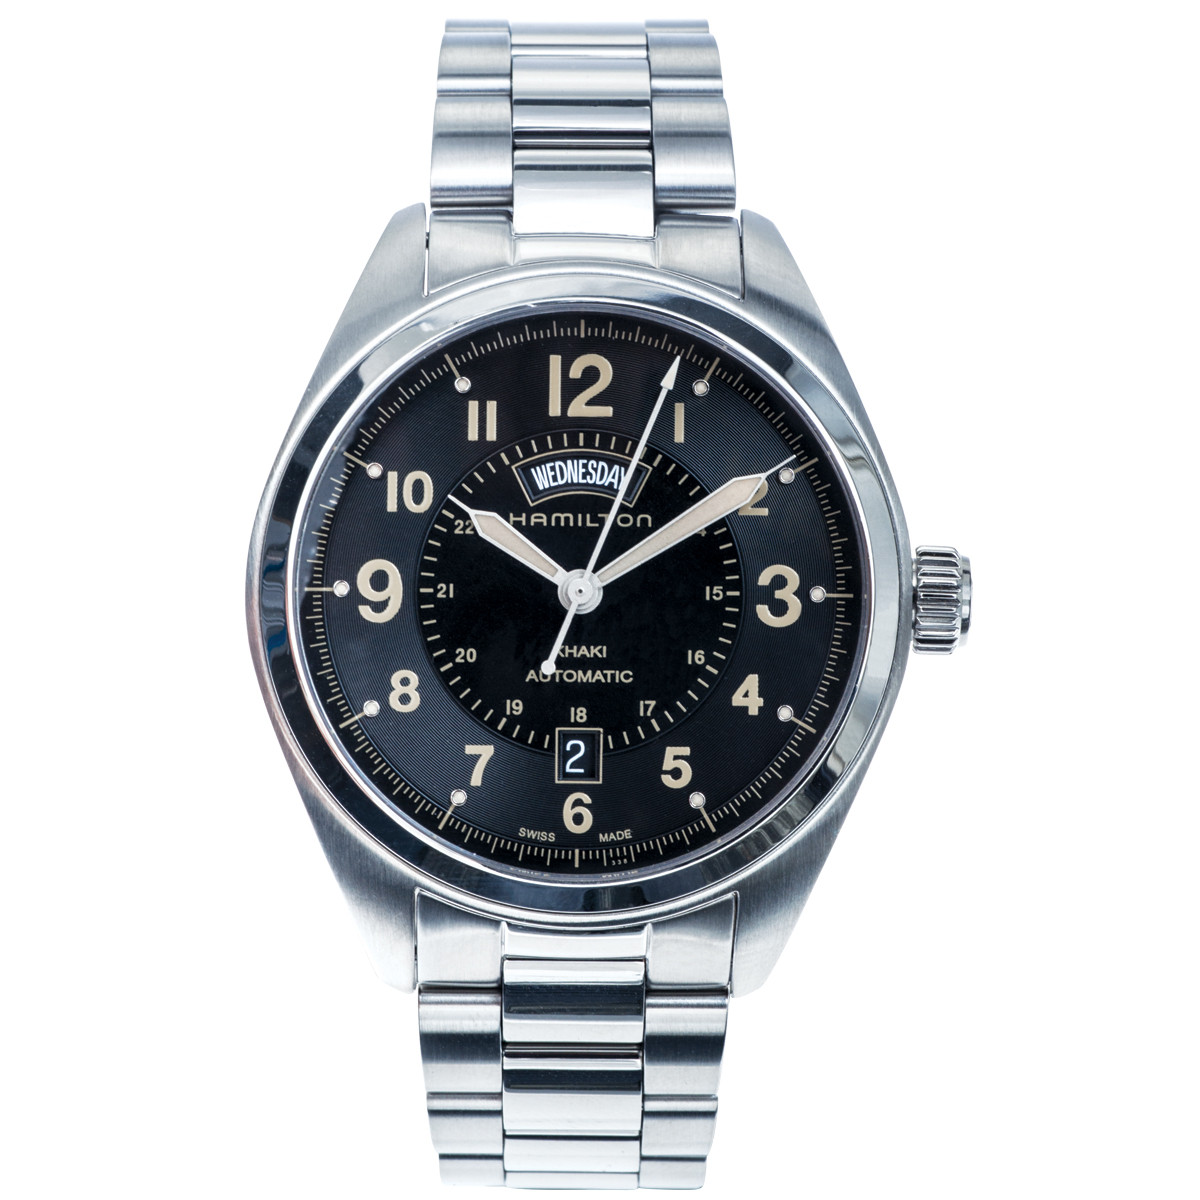 New Hamilton Khaki King Scuba